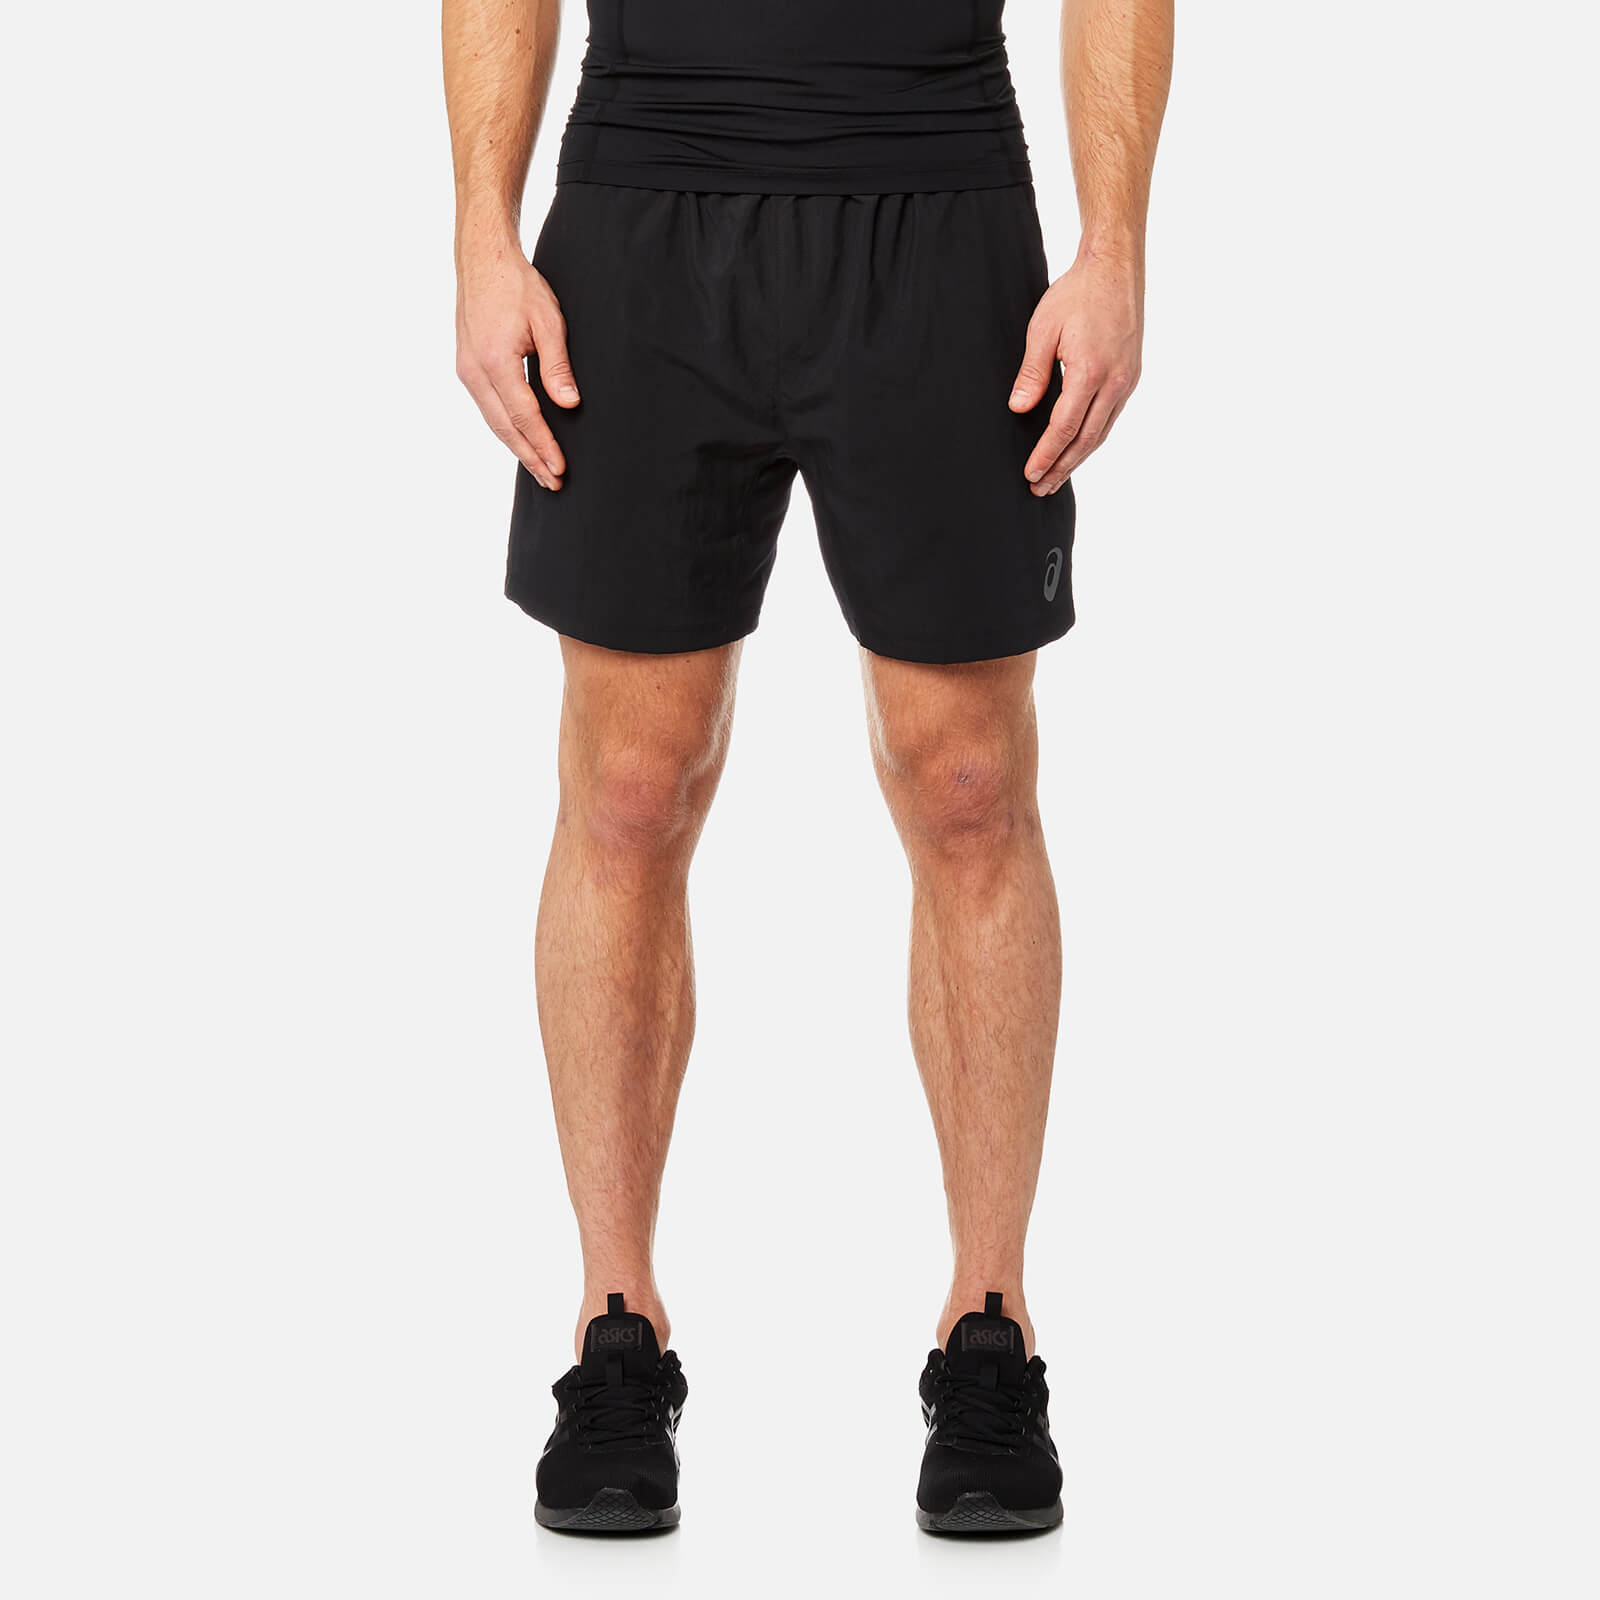 68e8b1721c Asics Men's Woven 7 Inch Shorts - Performance Black